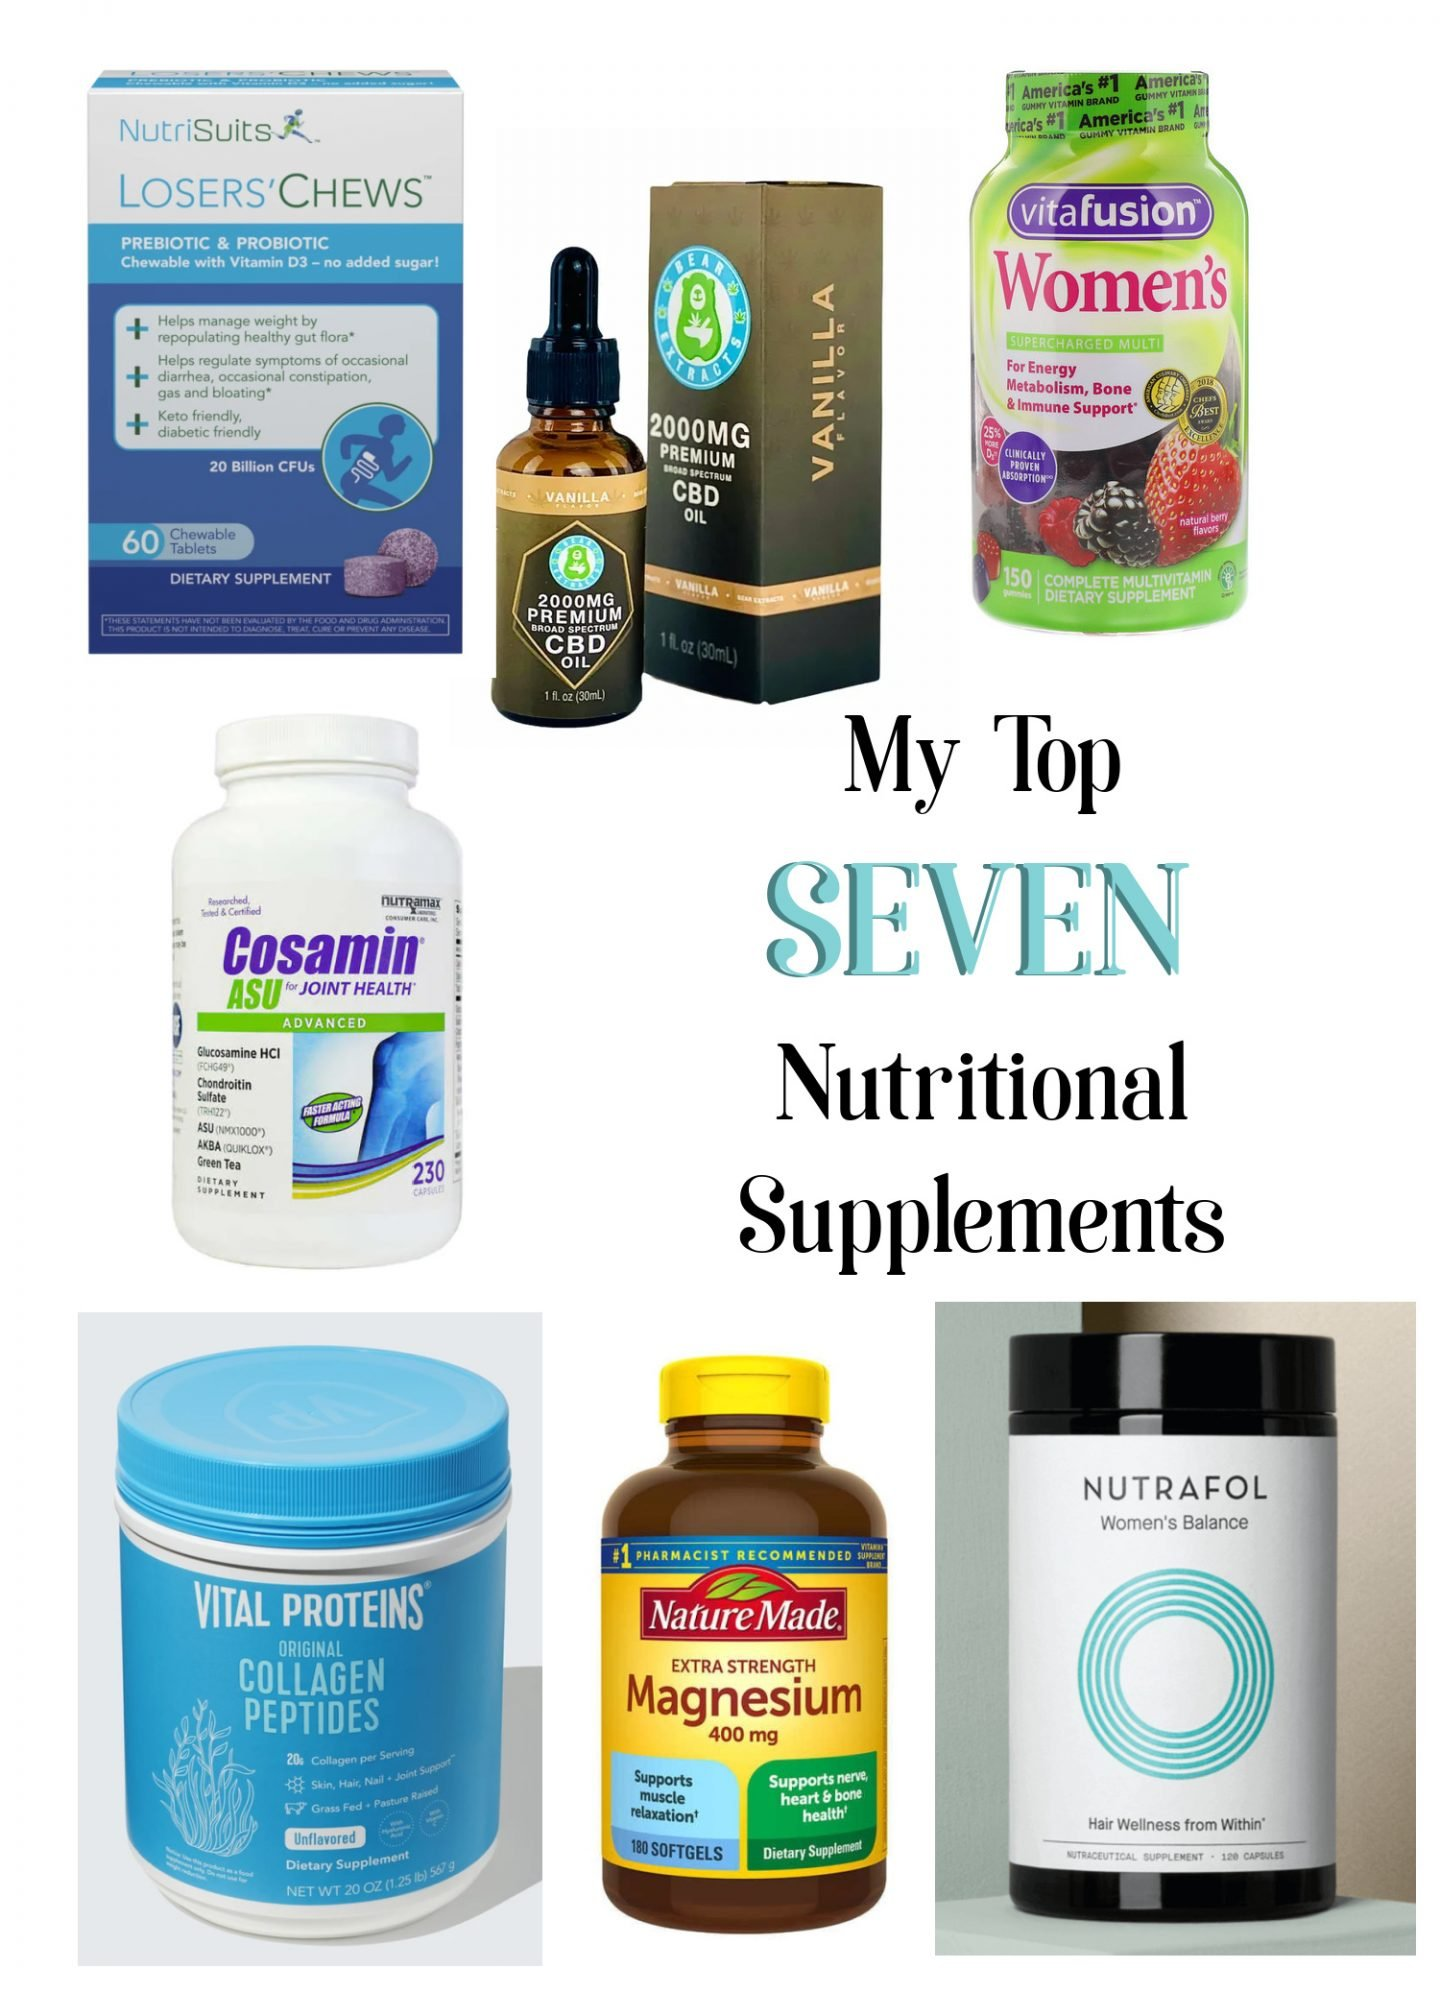 Top Seven Nutritional Supplements for Women